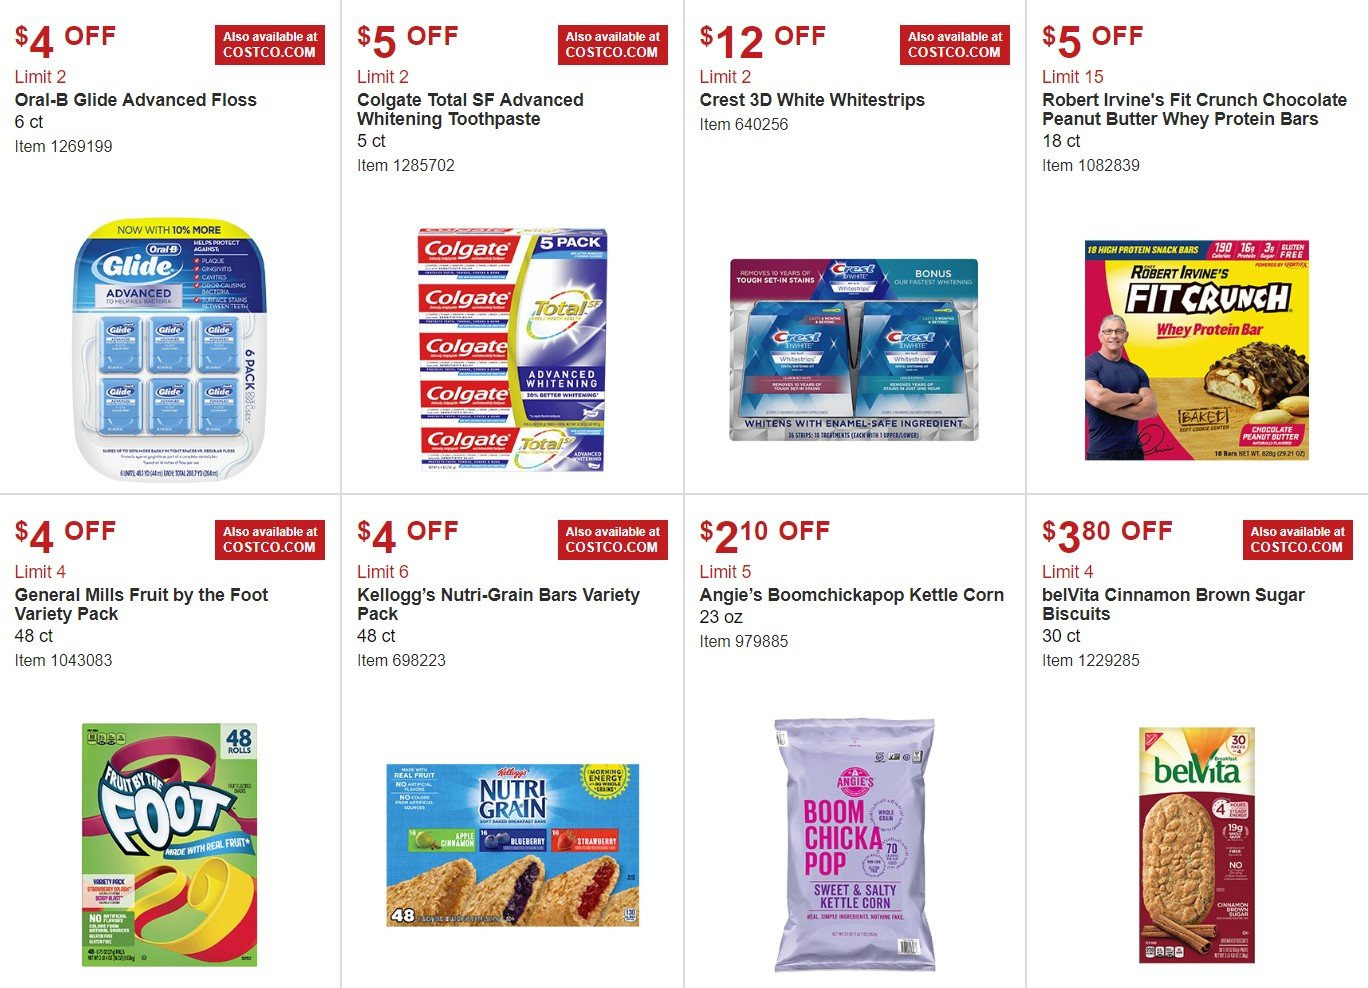 Costco Flyer - 02.06.2019 - 03.03.2019 - Sales products - biscuits, brown sugar, butter, corn, crest, colgate, safe, sugar, kettle corn, protein, peanut butter, oral-b, chocolate, toothpaste, snack. Page 8.